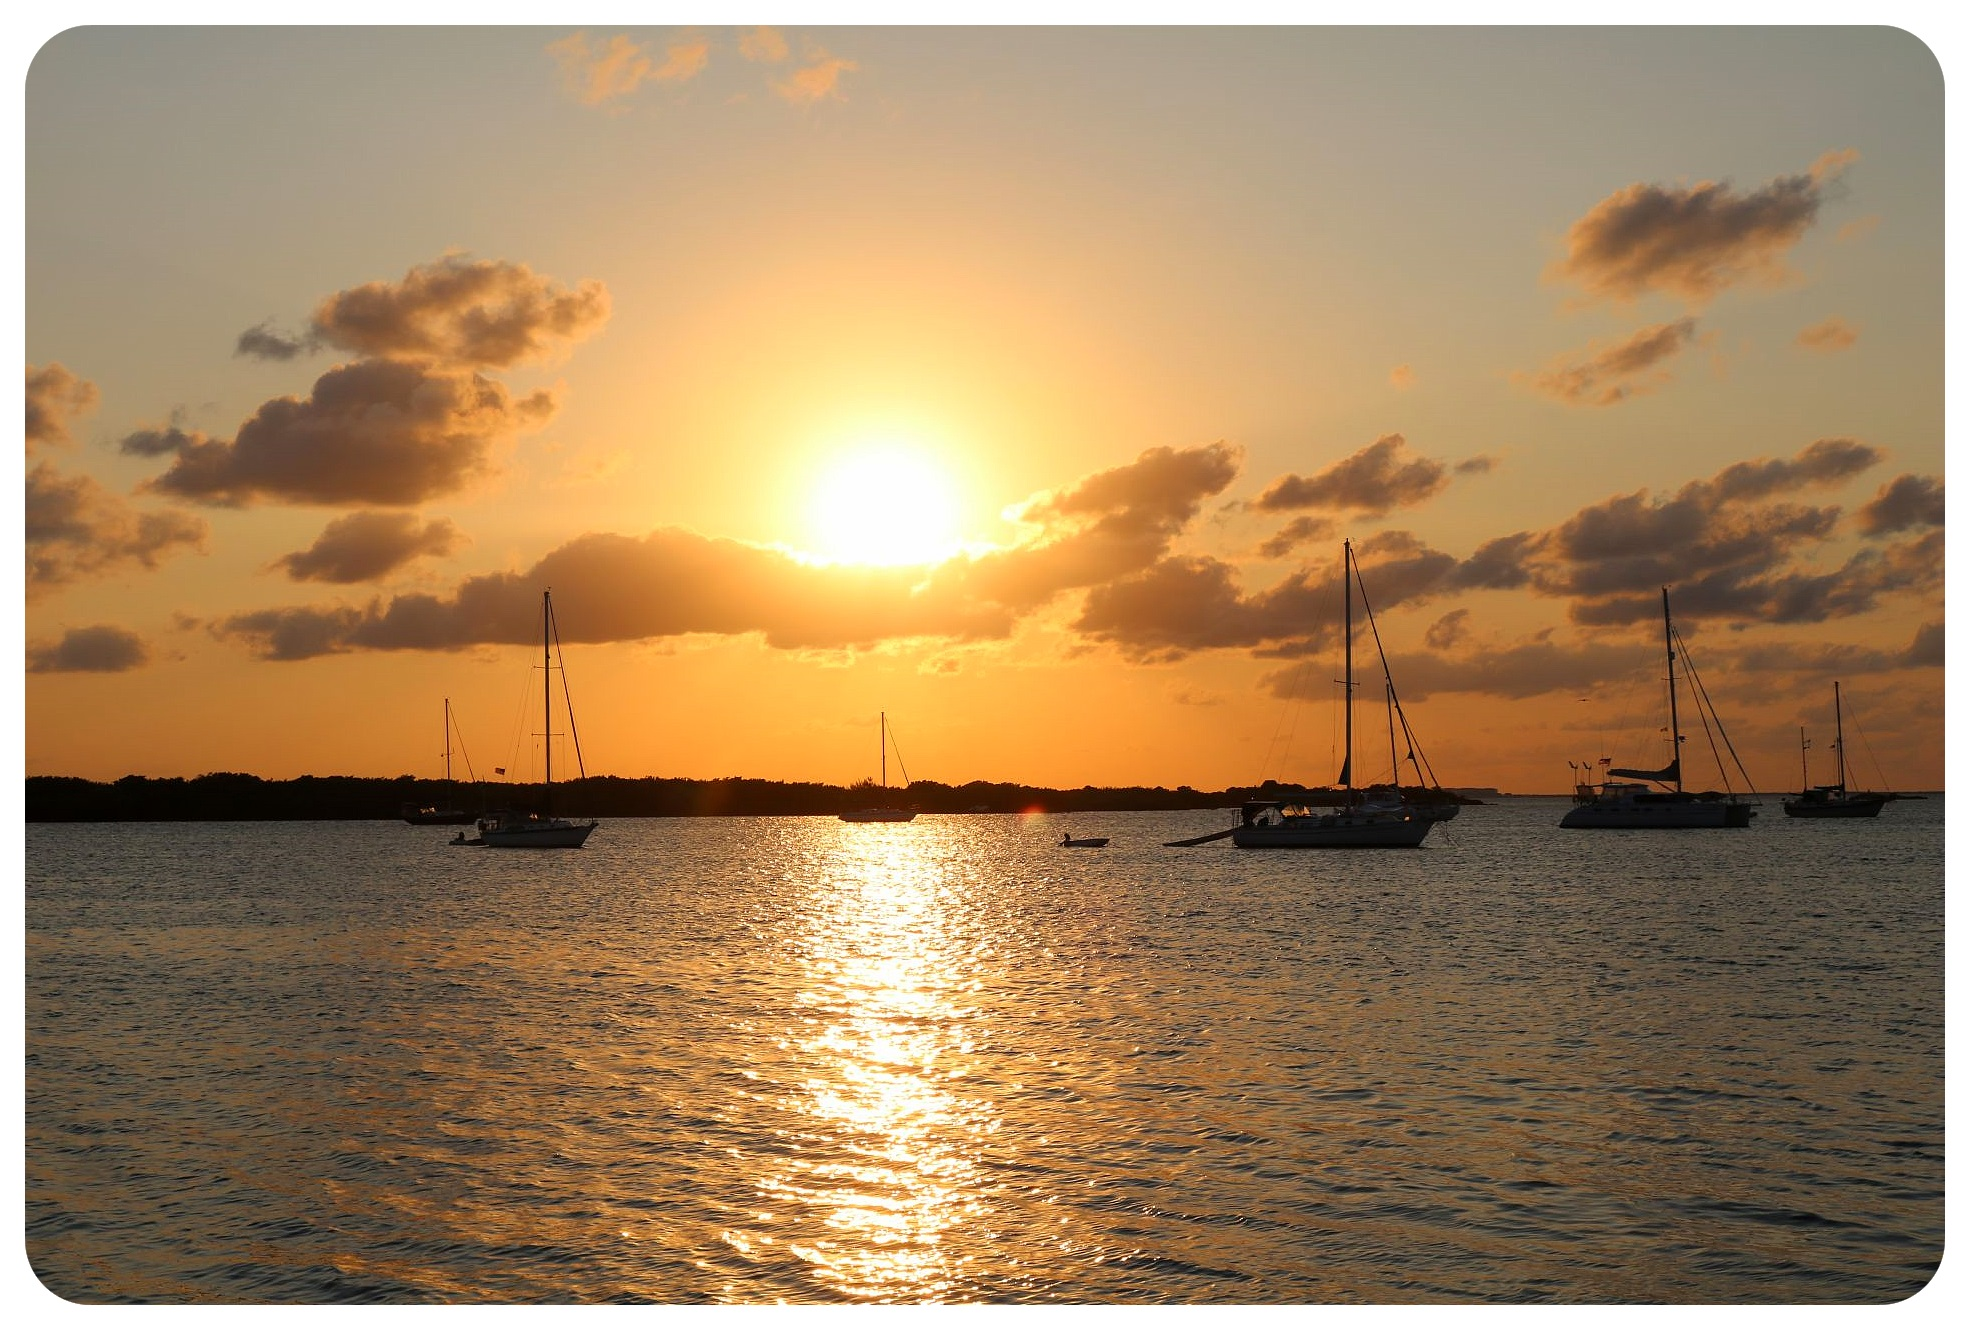 isla mujeres sunset - Copy